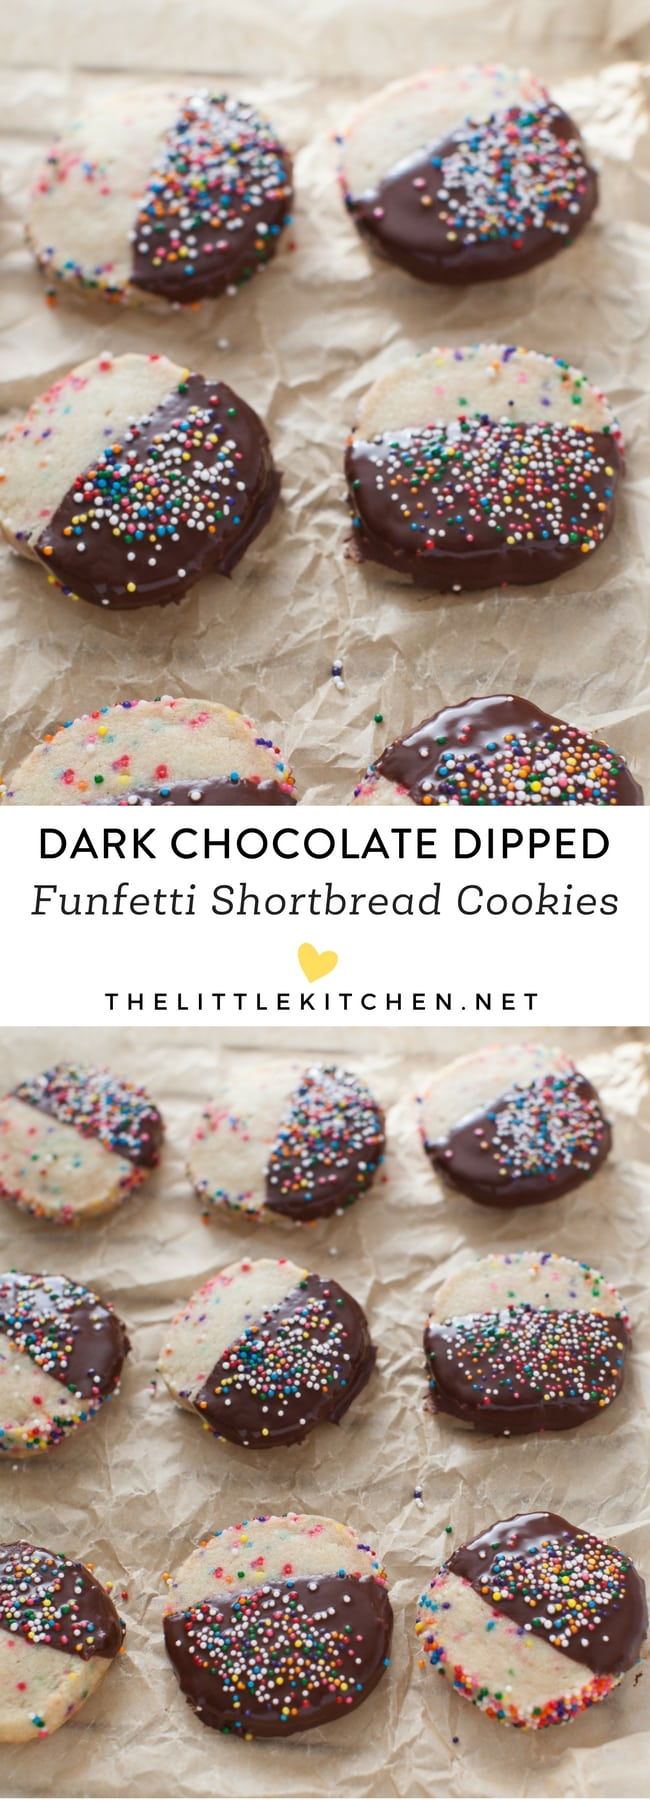 Dark Chocolate Dipped Funfetti Shortbread Cookies from thelittlekitchen.net